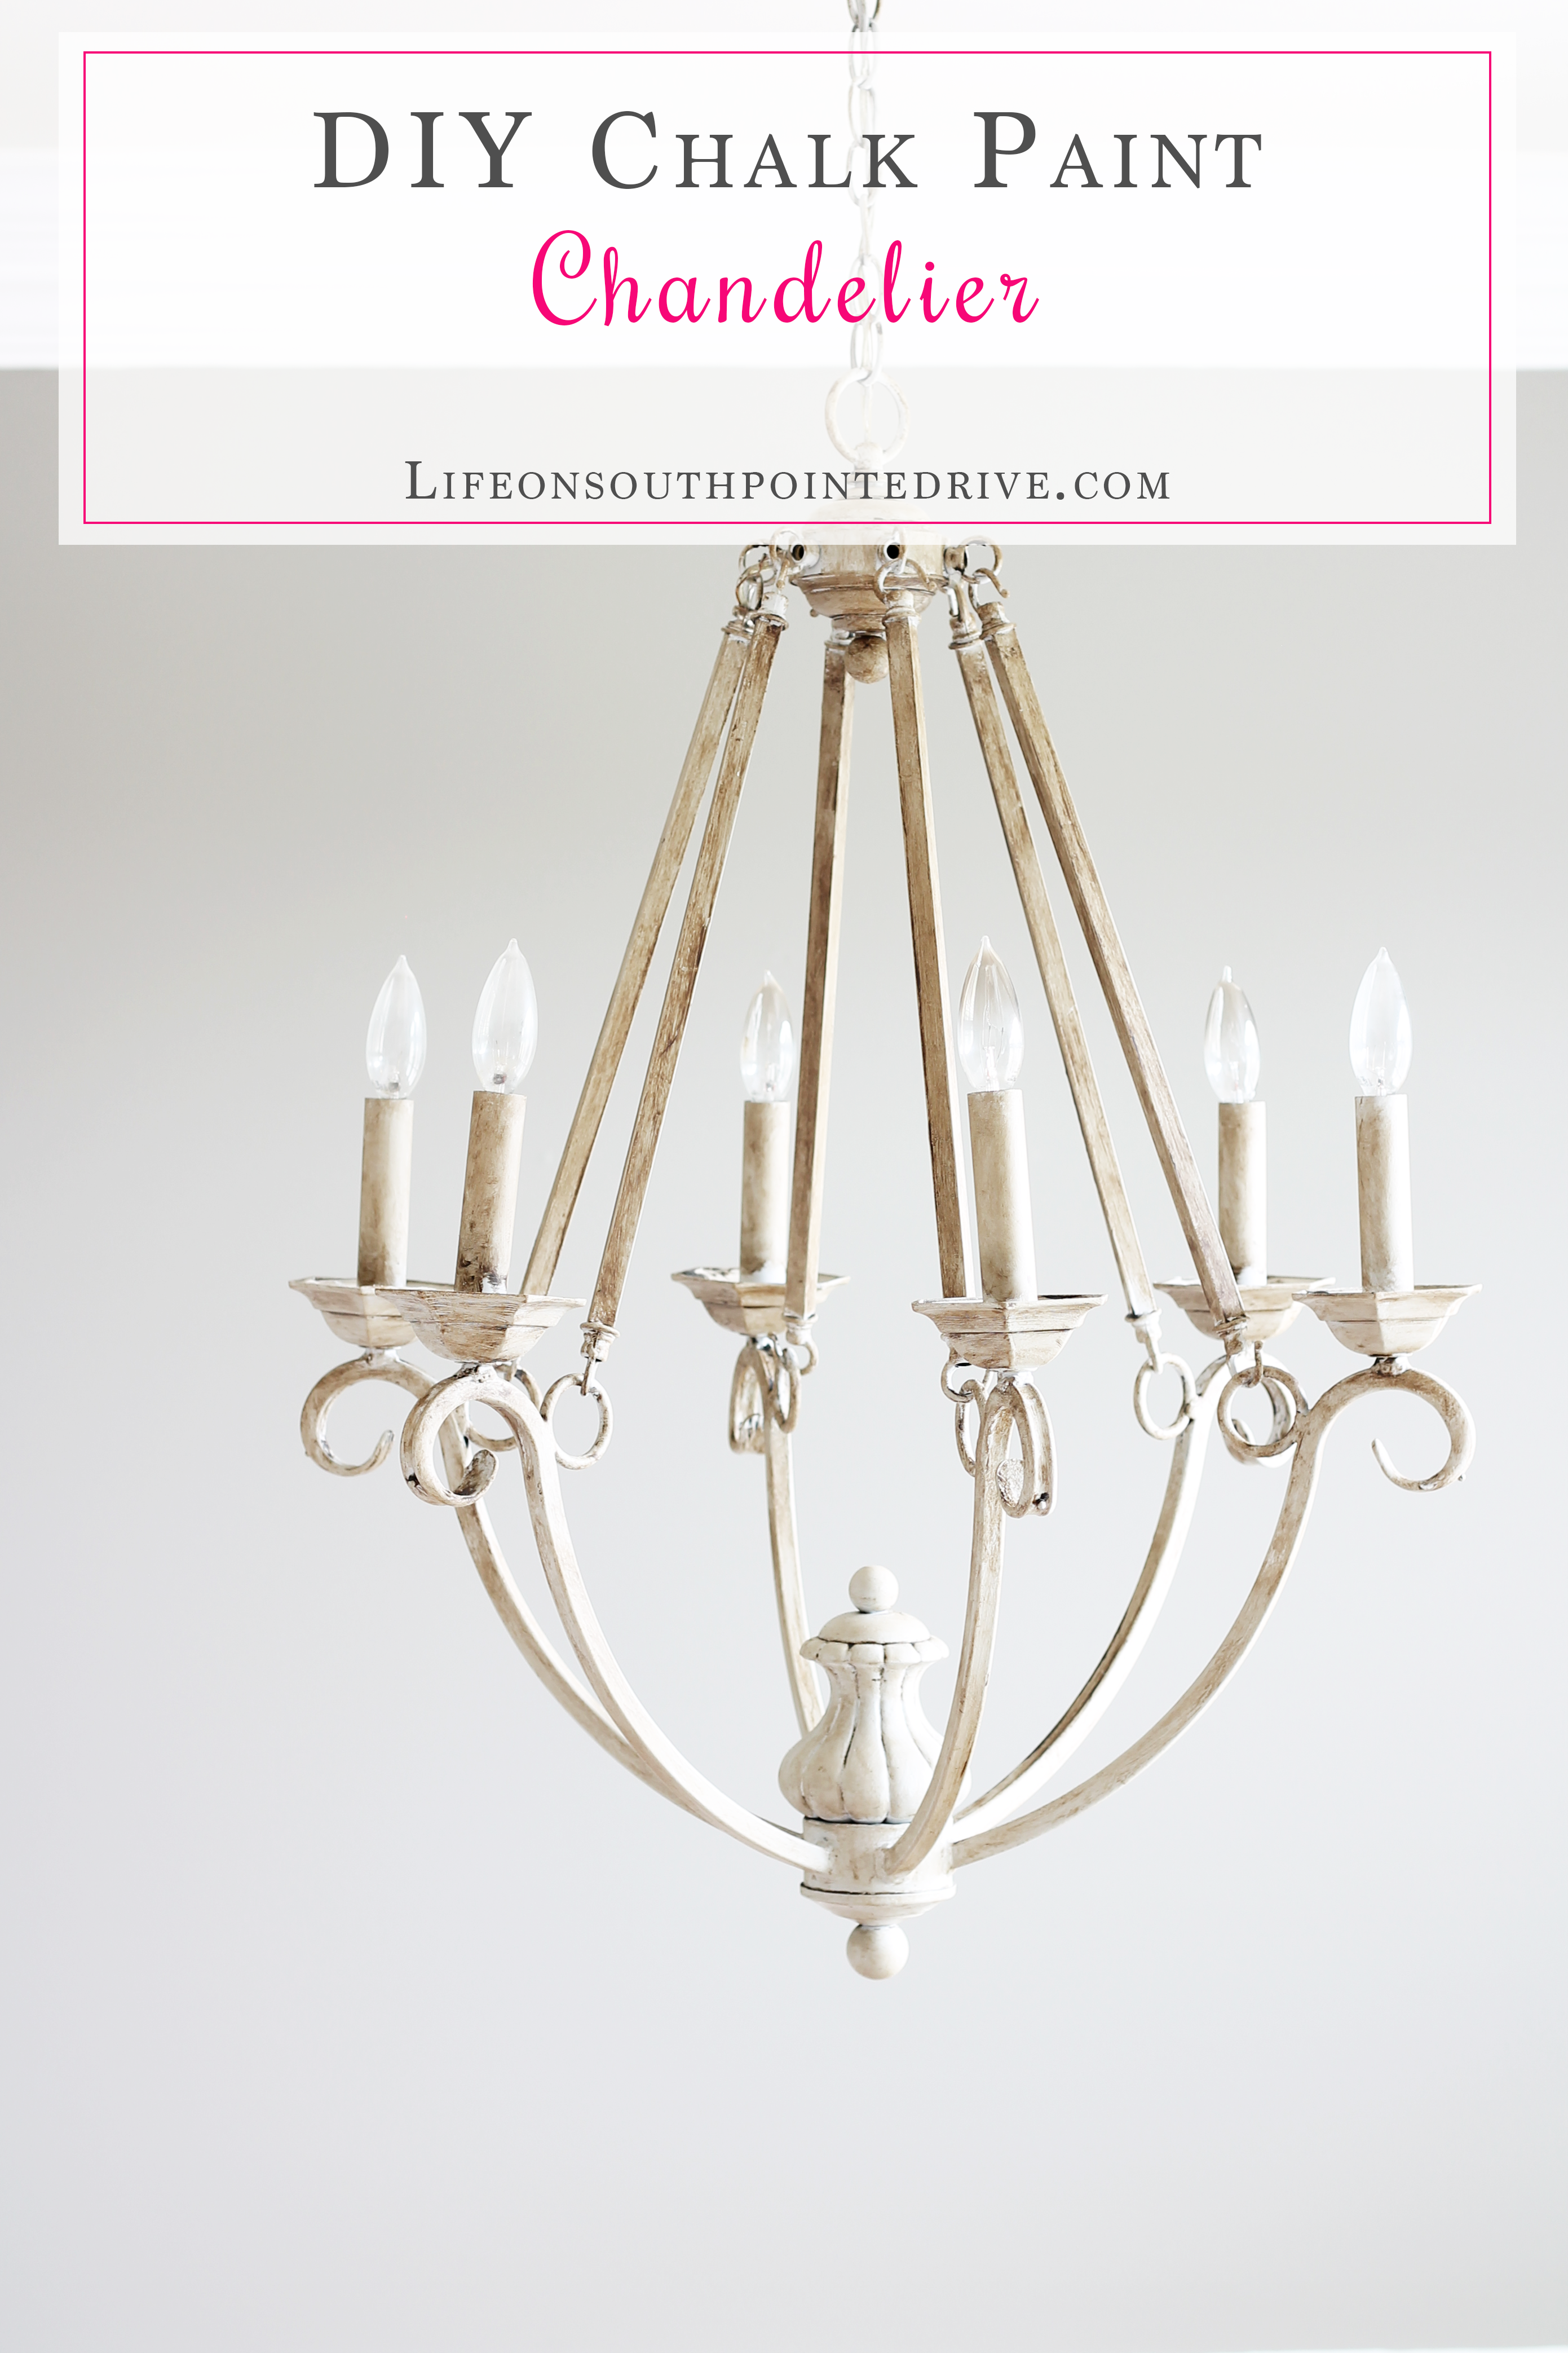 Diy chalk paint chandelier life on southpointe drive diy chalk paint chandelier chalk paint annie sloan chalk paint diy diy arubaitofo Choice Image